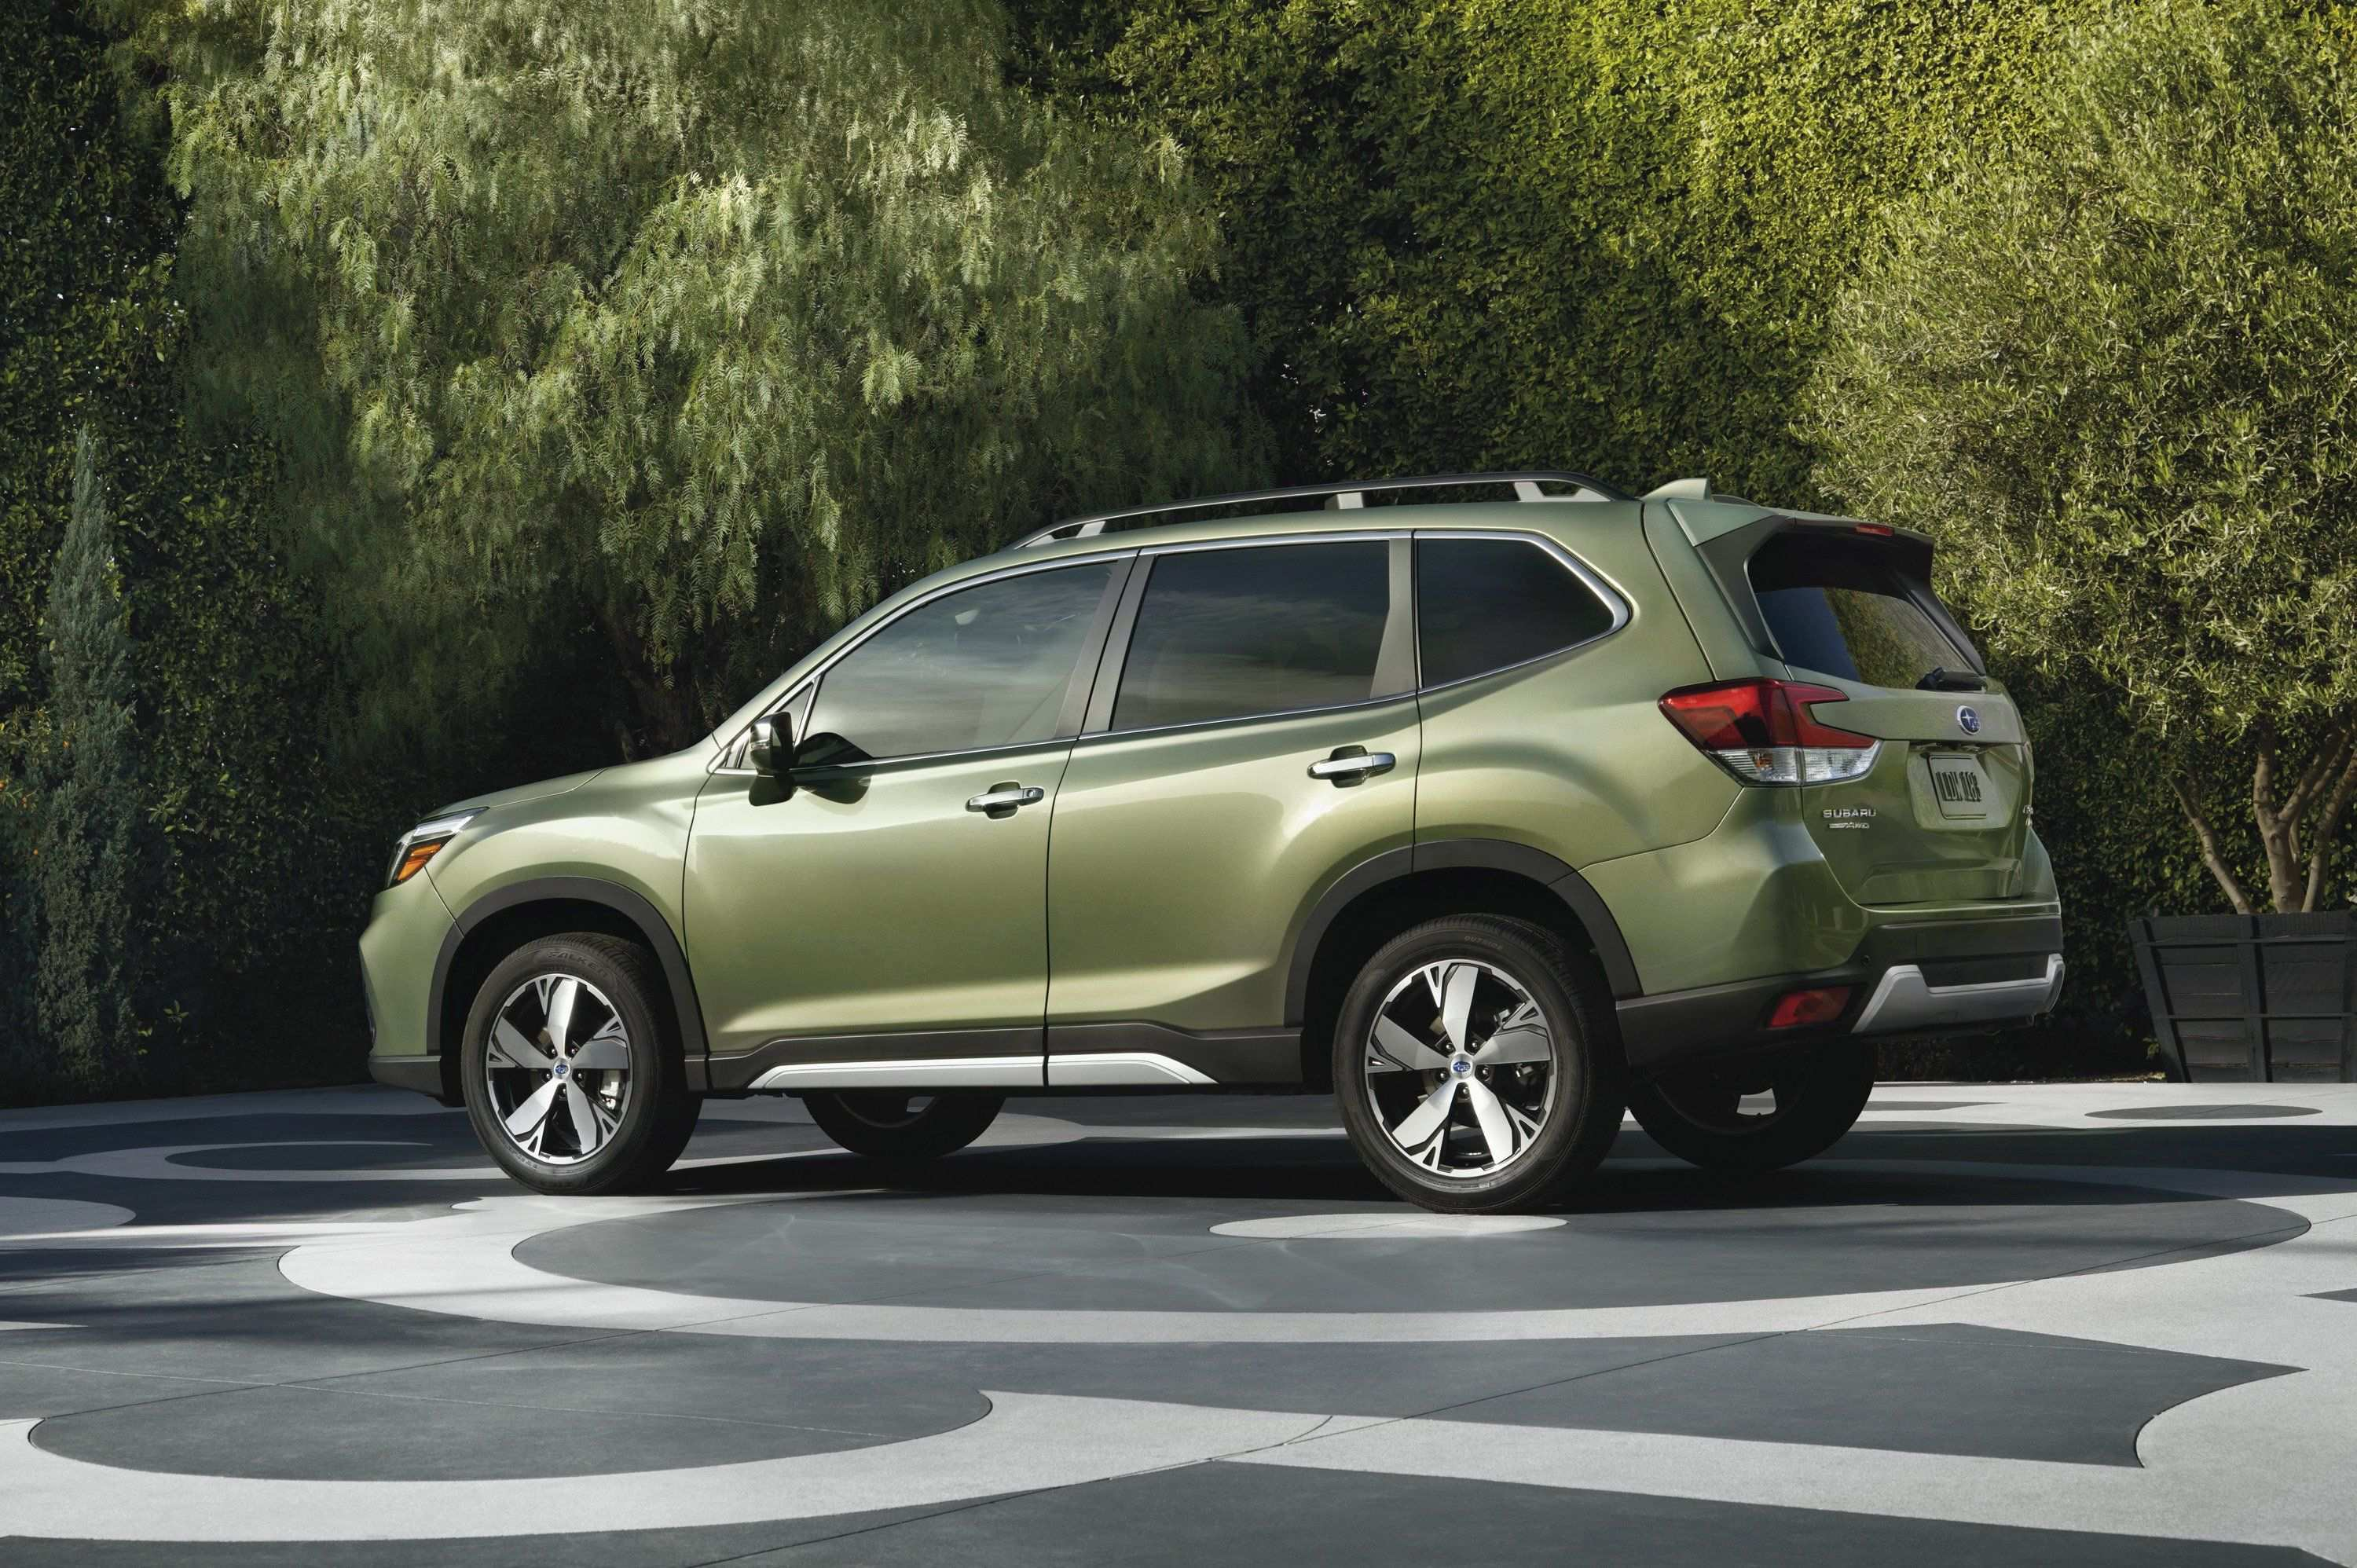 18 All New Subaru Forester 2019 Ground Clearance Rumors Performance and New Engine for Subaru Forester 2019 Ground Clearance Rumors